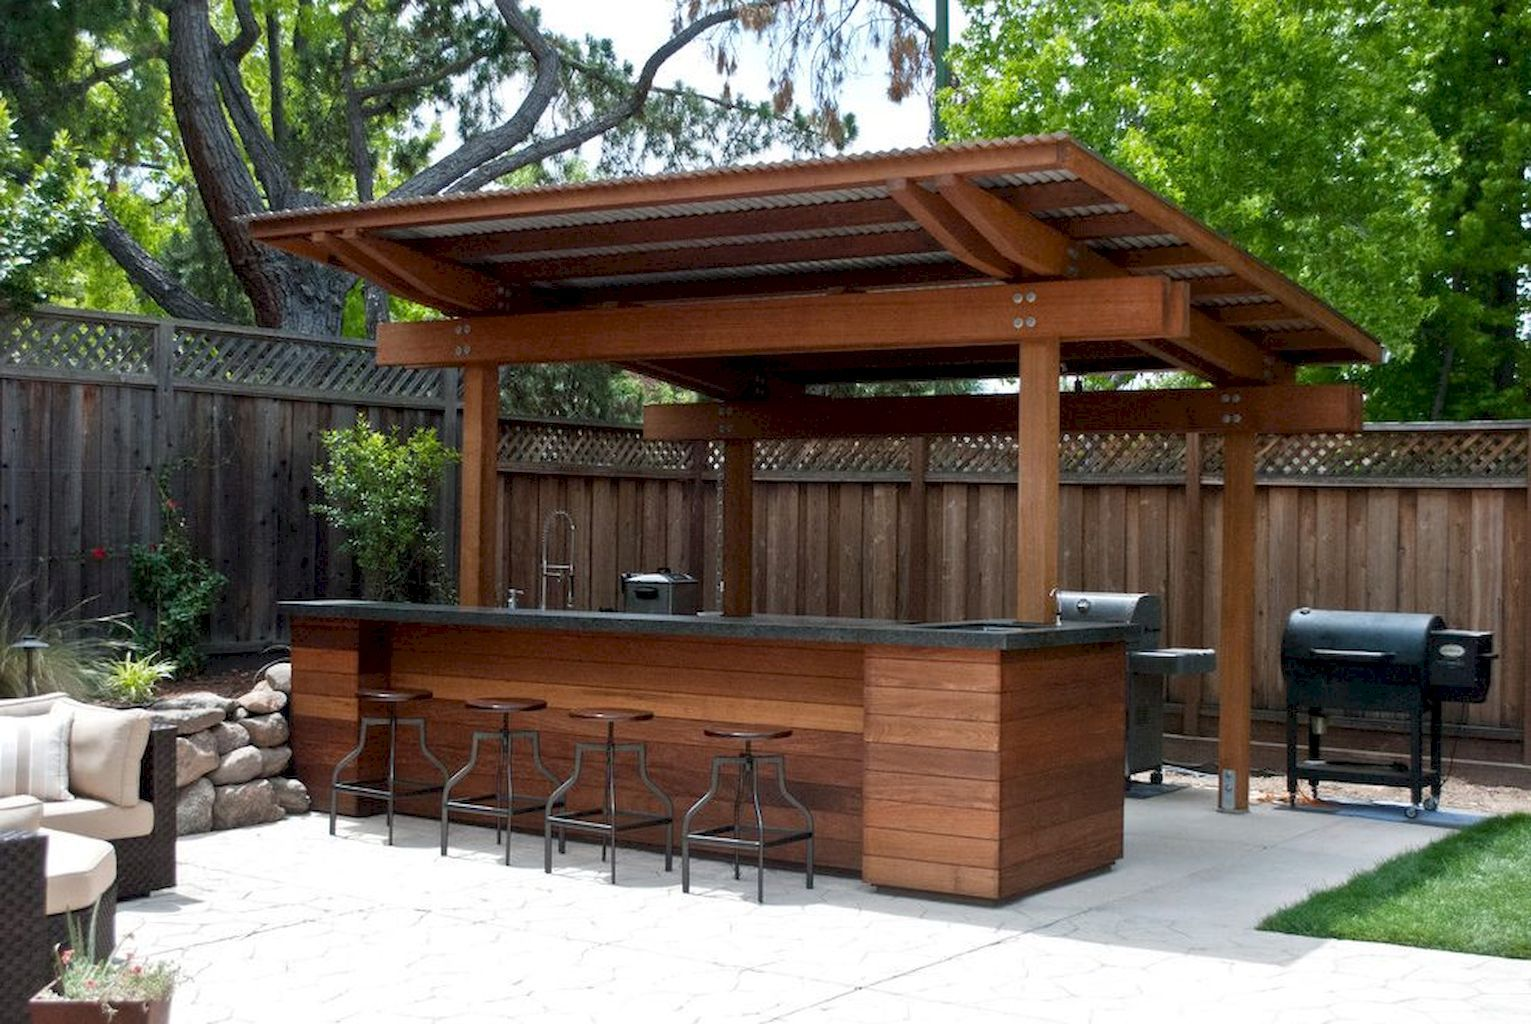 60 awesome outdoor kitchens ideas on a budget outdoor kitchen outdoor kitchen design outdoor on outdoor kitchen ideas on a budget id=18805